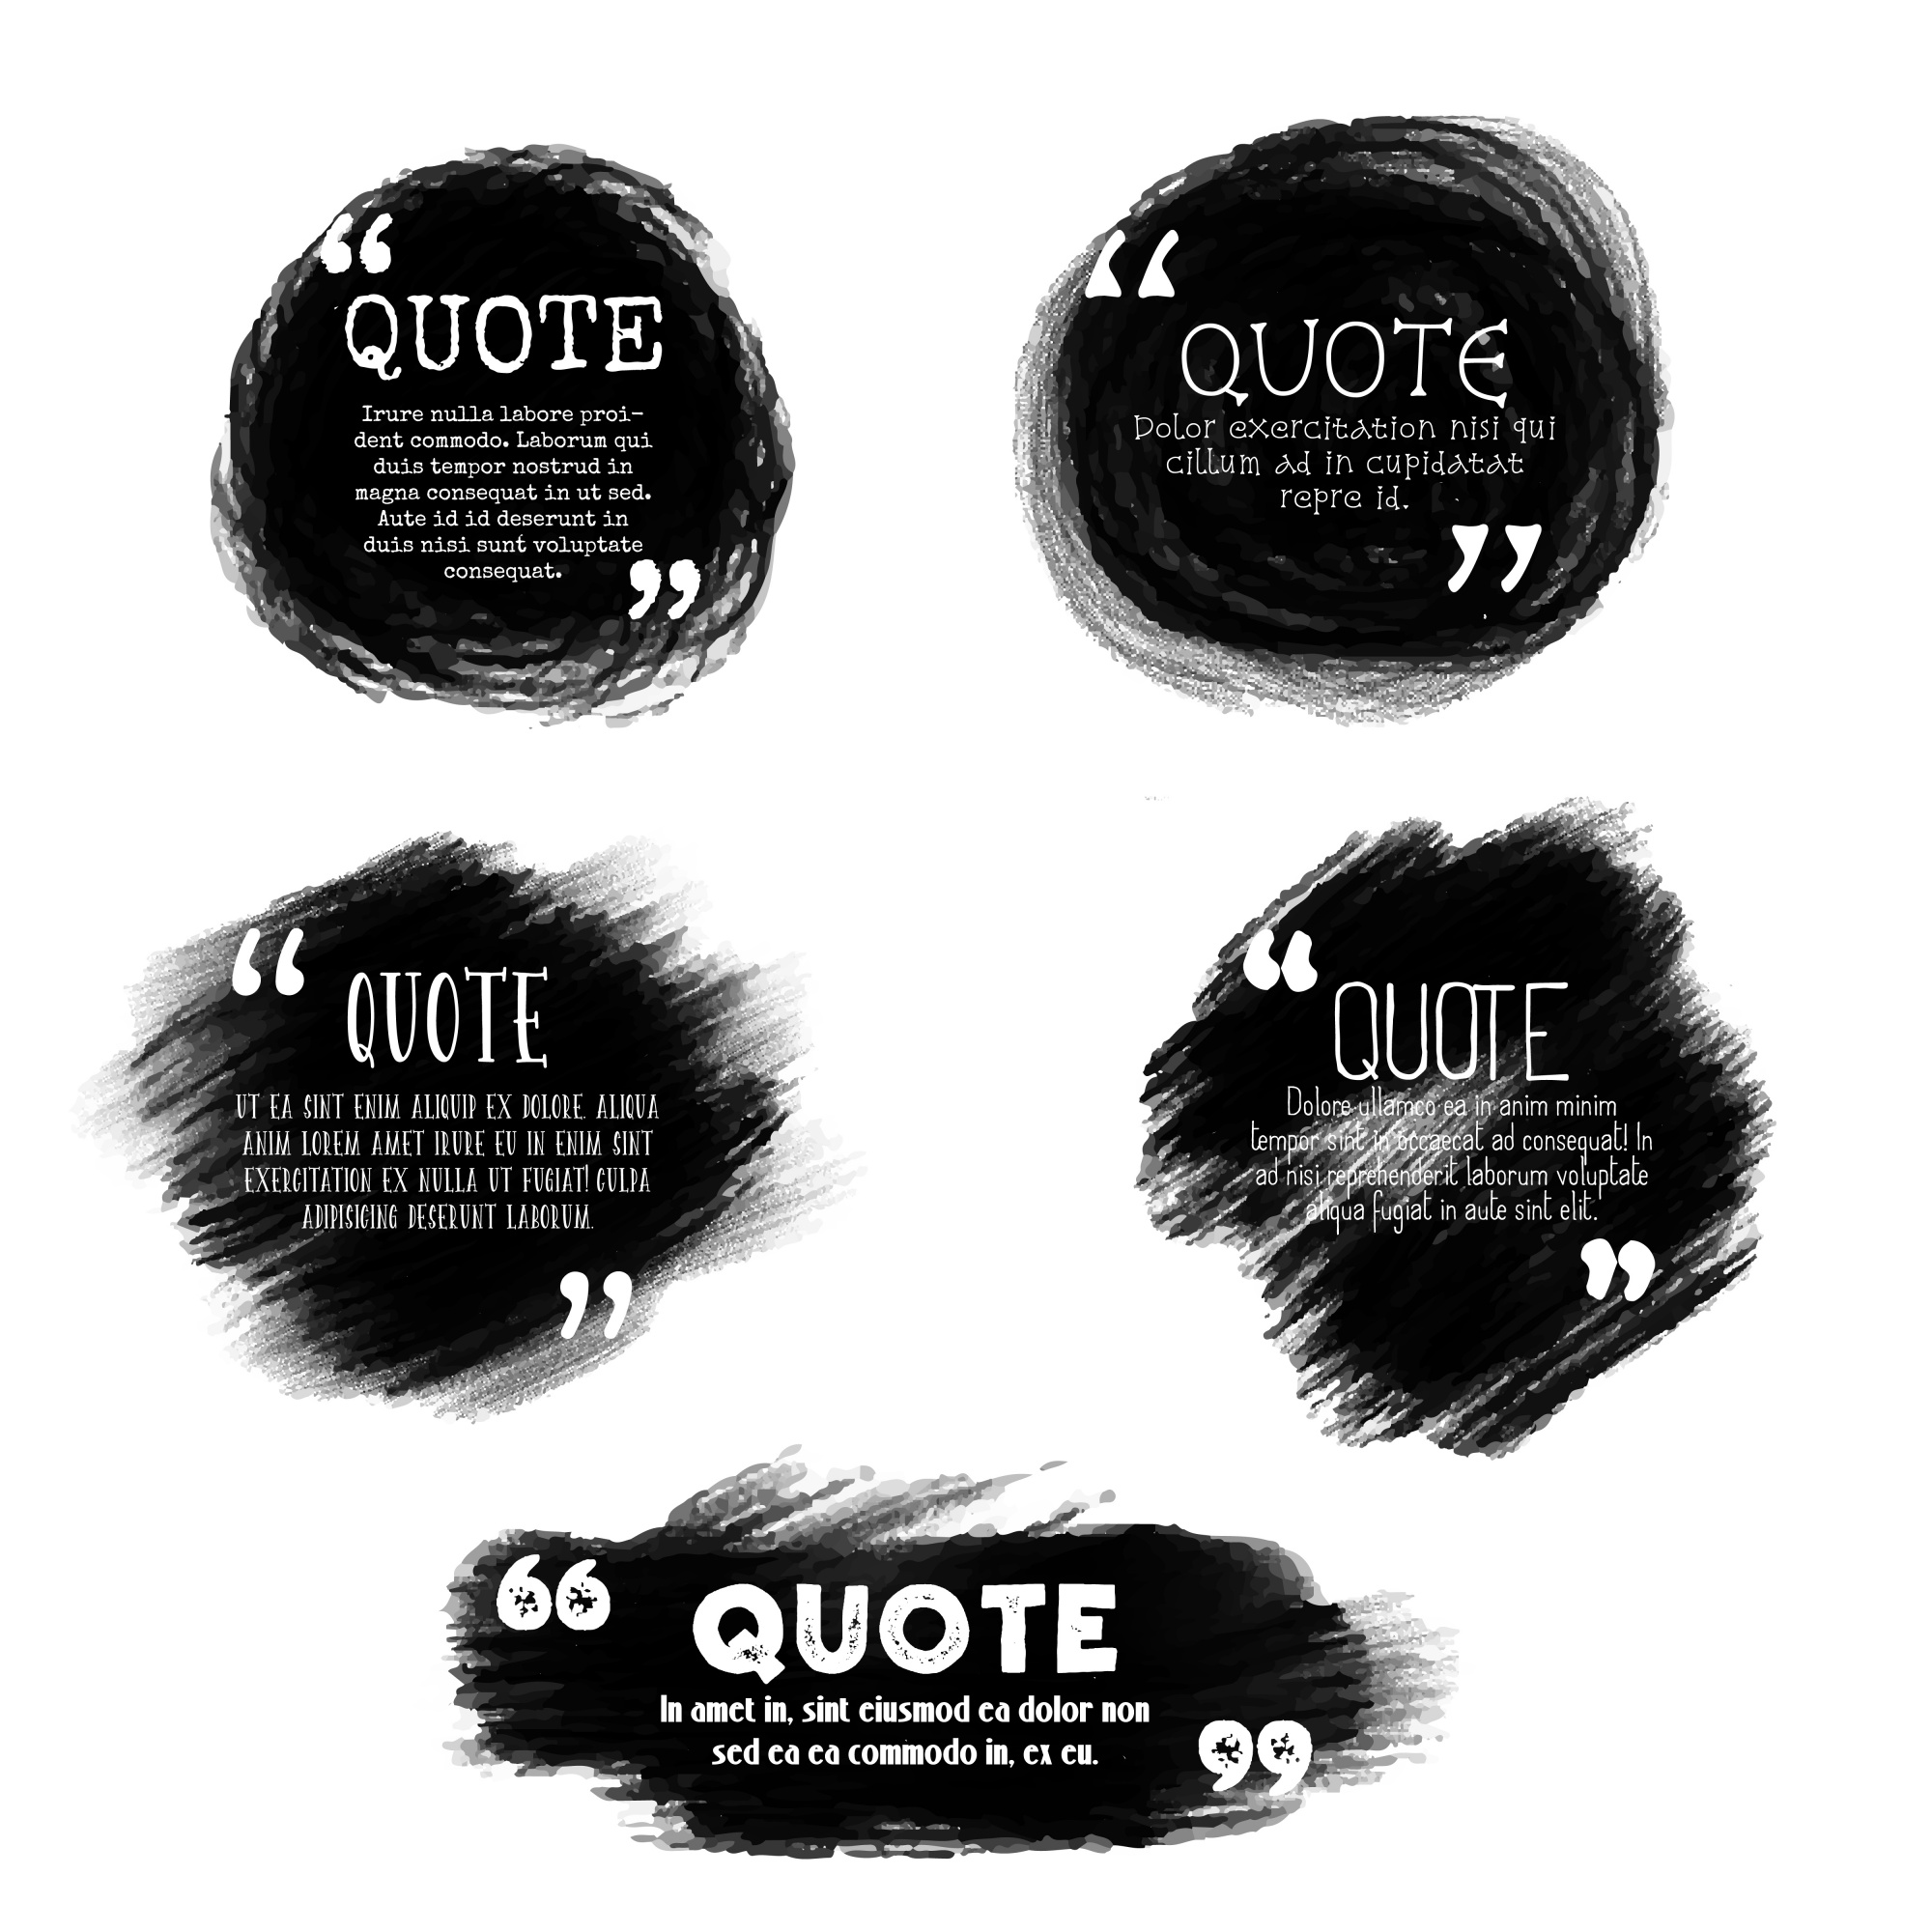 Grunge style quotation templates